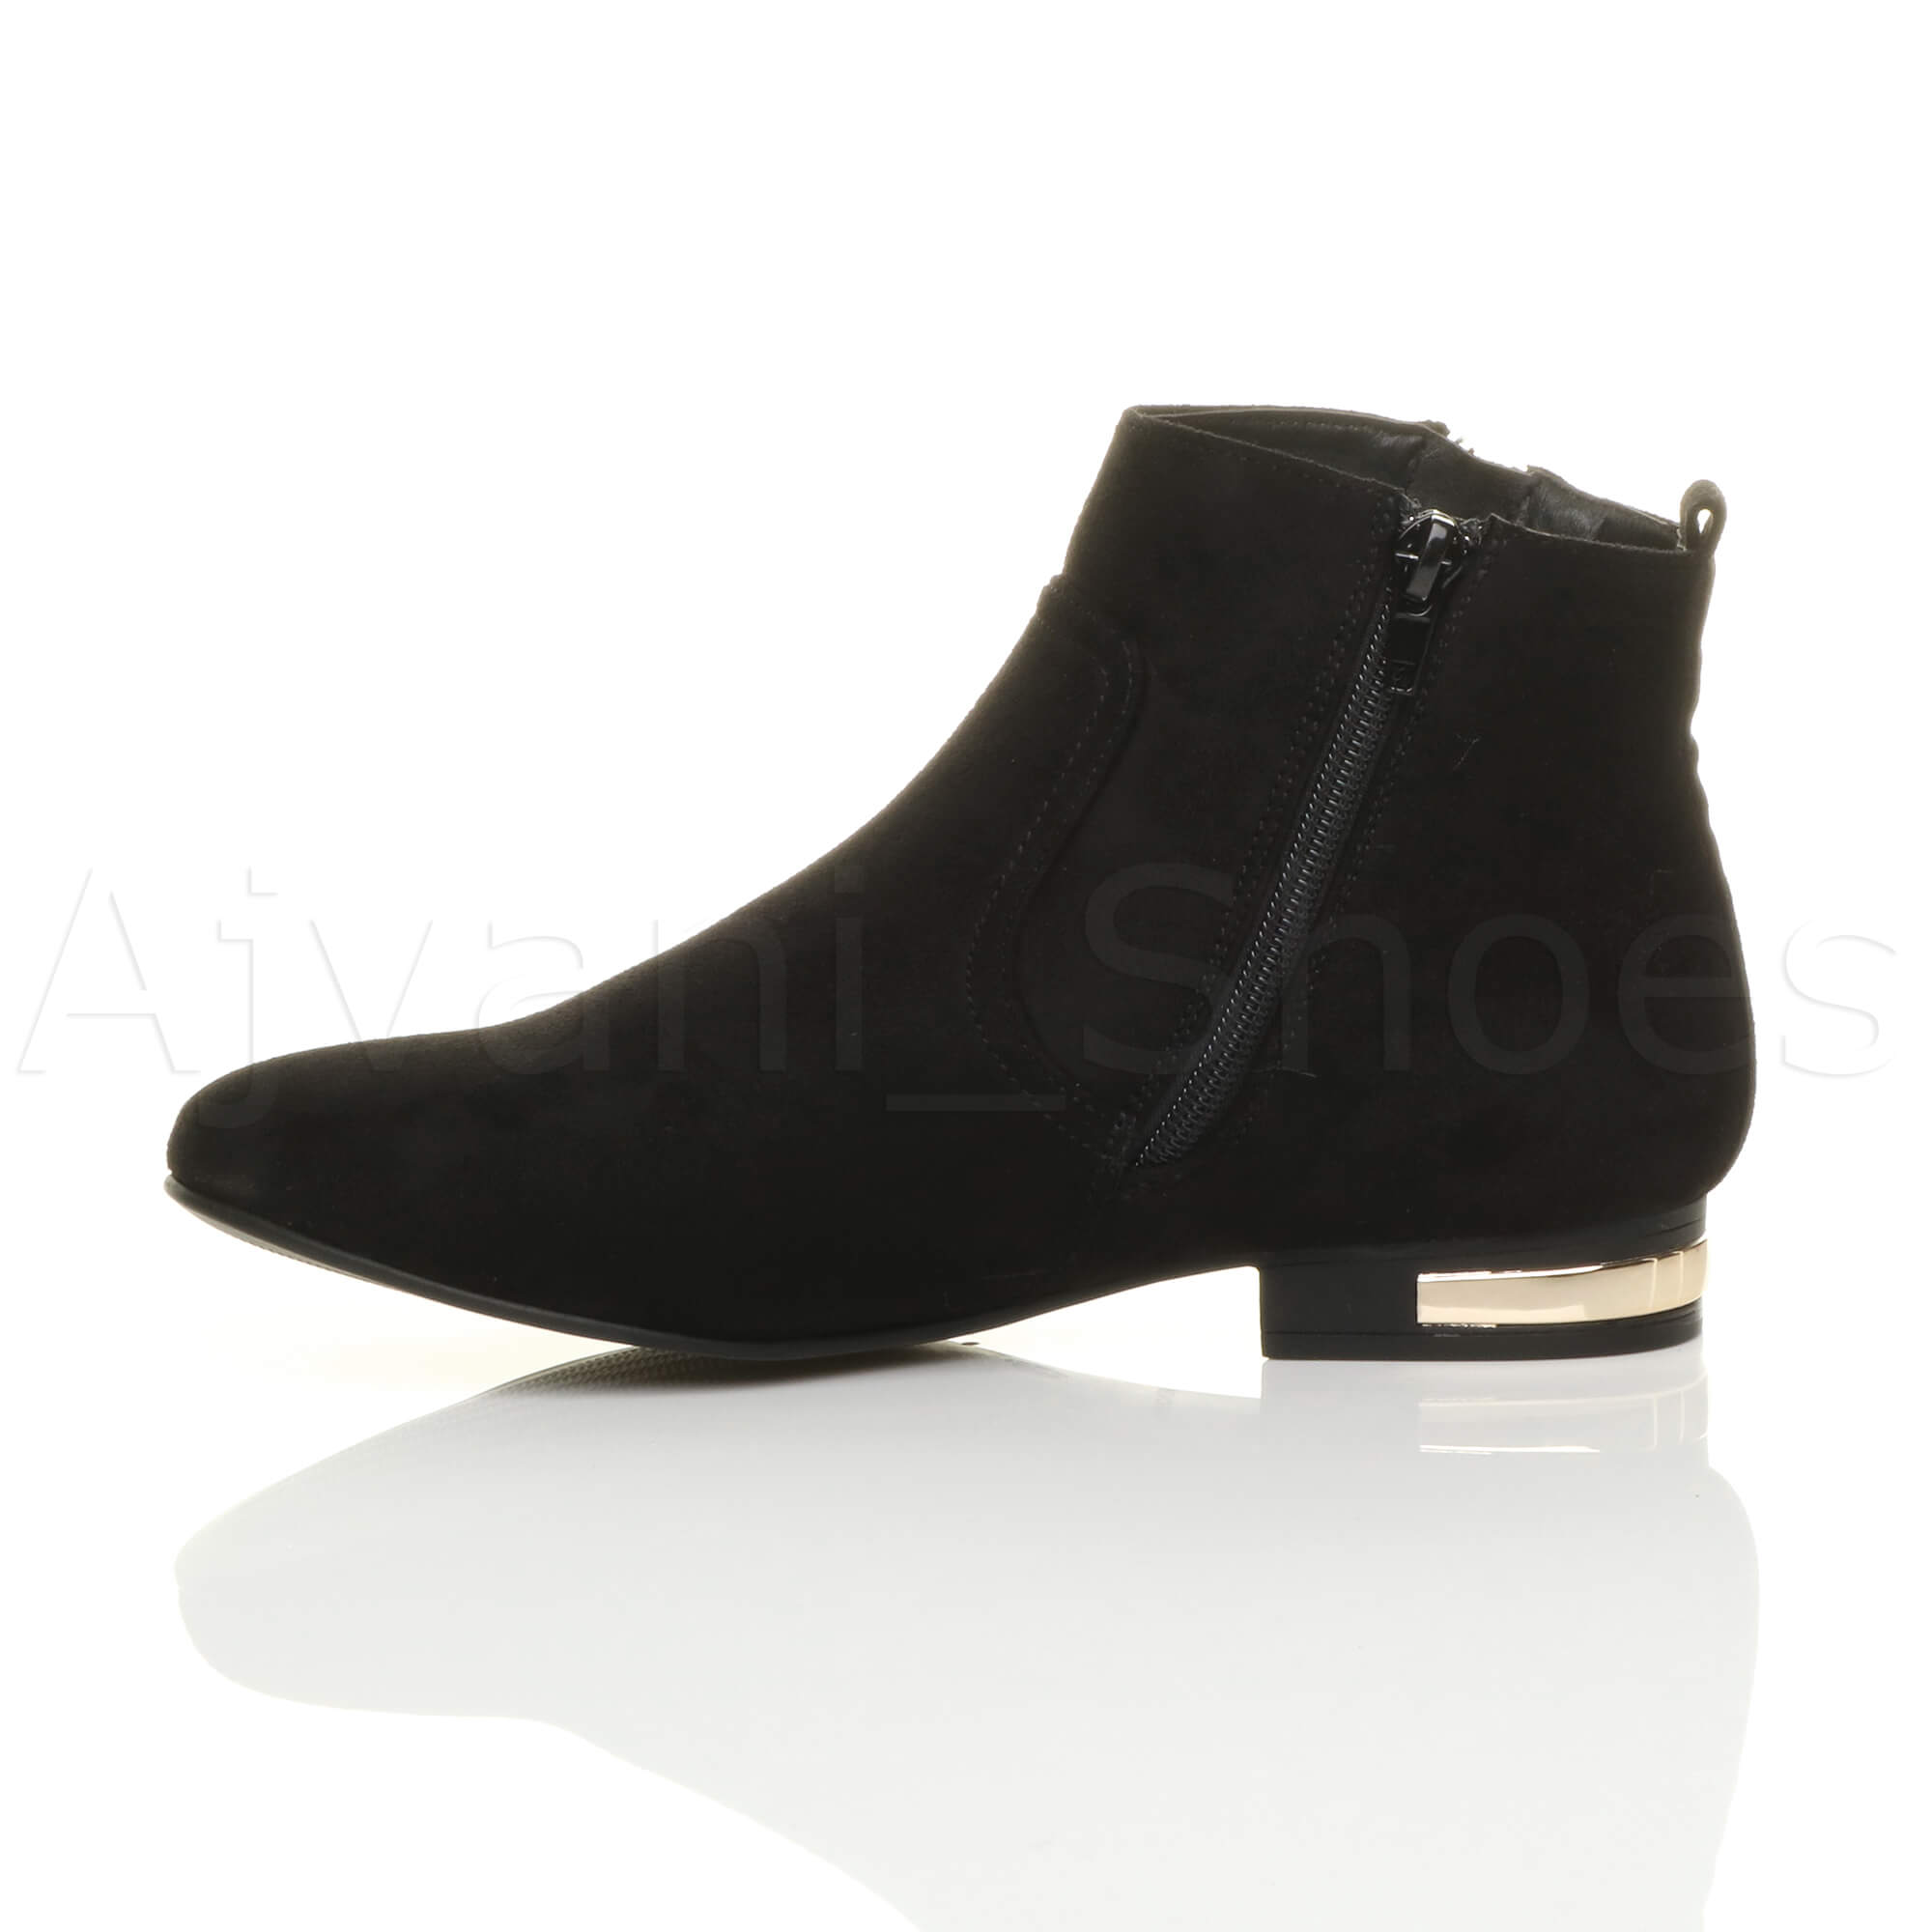 WOMENS-LADIES-LOW-HEEL-GOLD-ZIP-CONTRAST-RIDING-PIXIE-ANKLE-BOOTS-BOOTIES-SIZE thumbnail 12